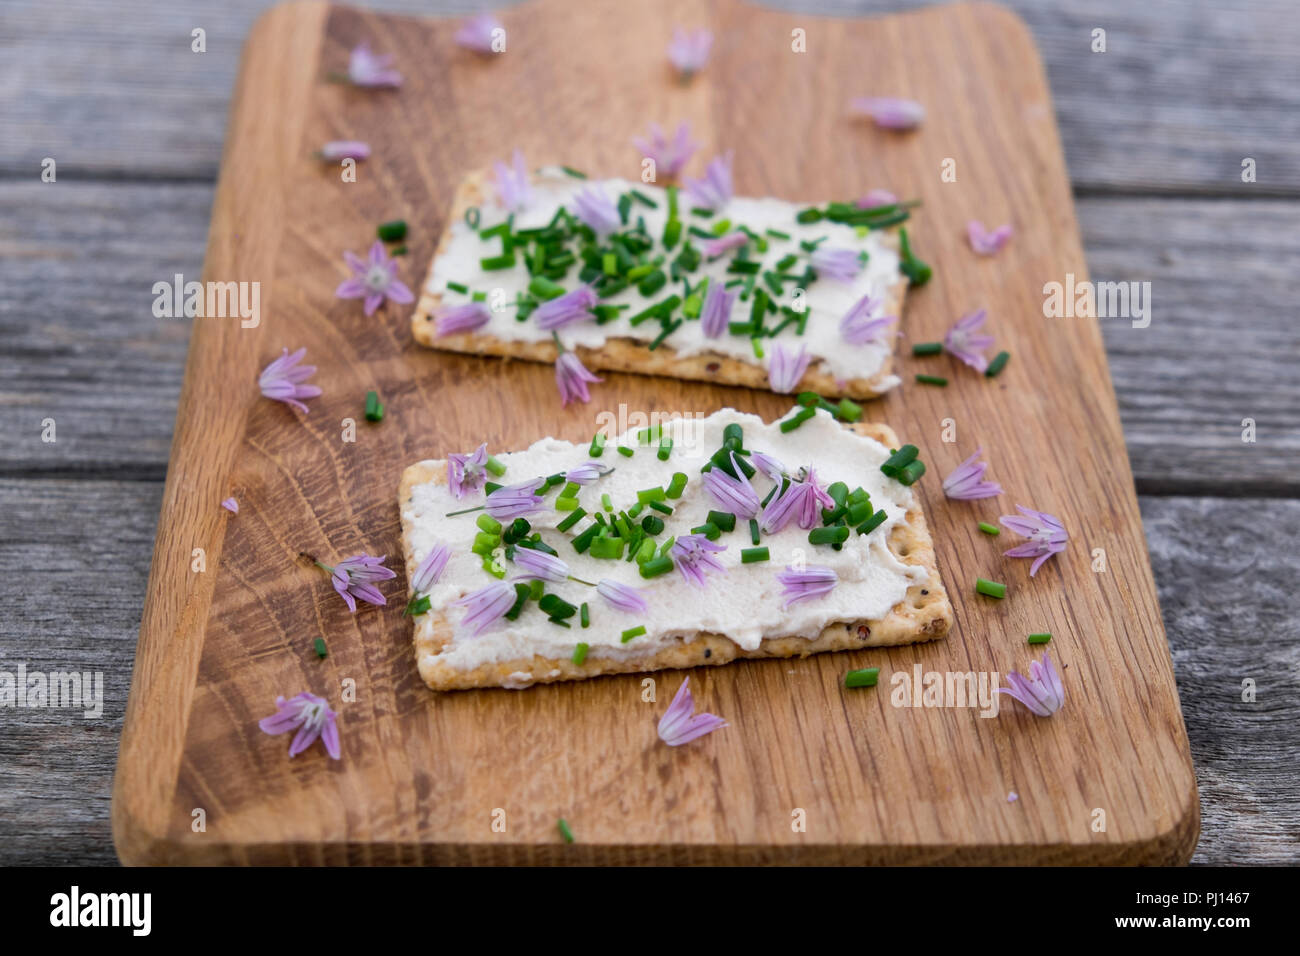 Two dairy and lactose-free vegan cream cheese spread made from cashew and macadamia nuts on crackers with fresh chopped chives and edible chive flower - Stock Image